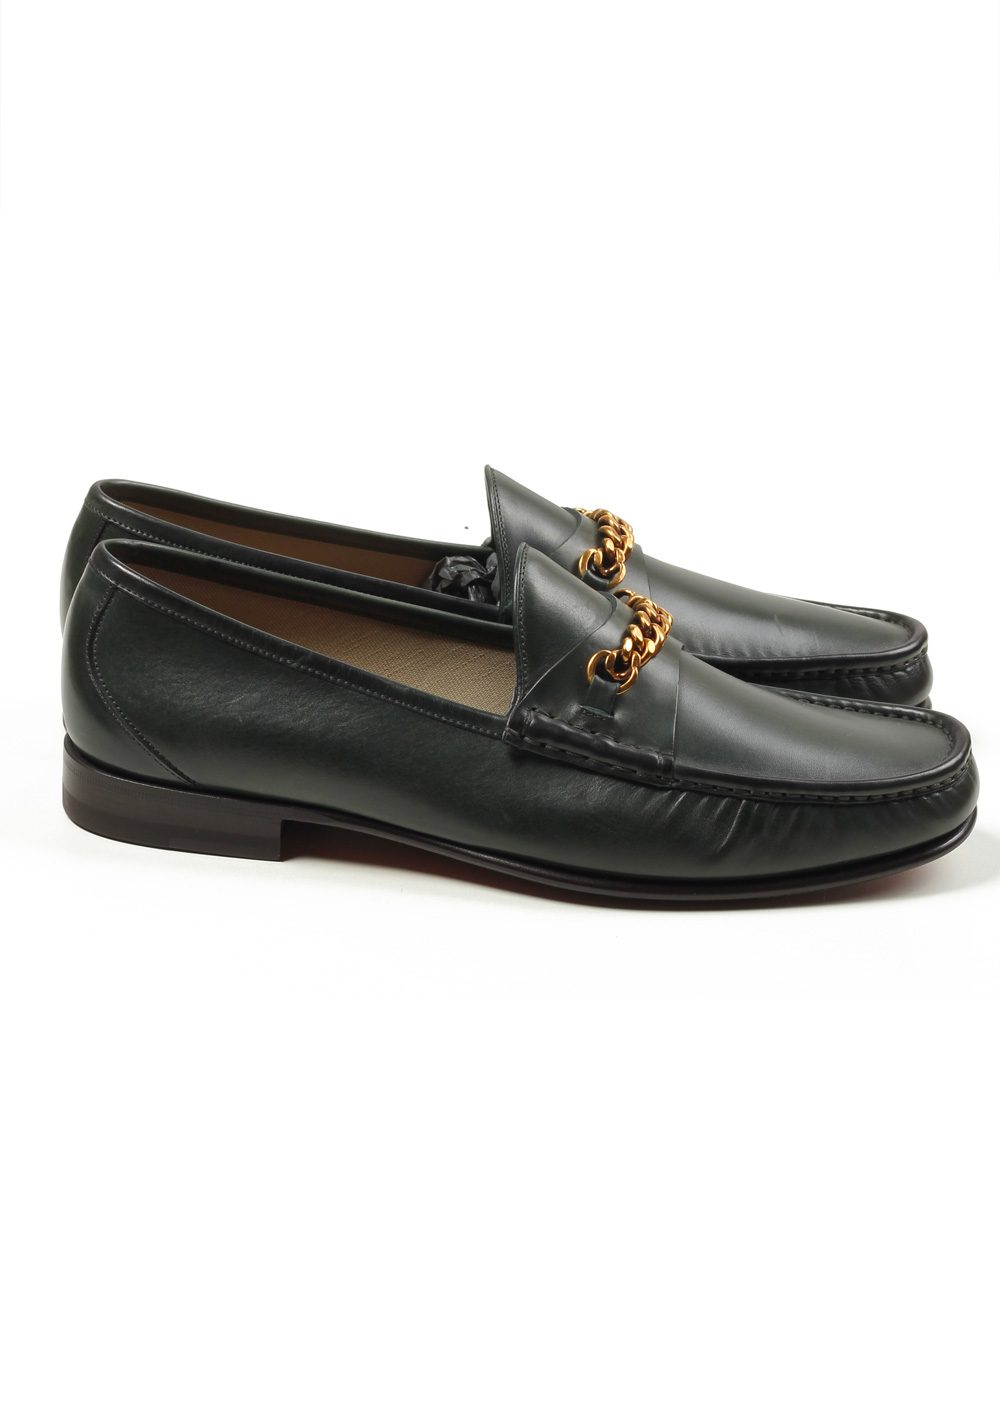 Gold Chain Suede Loafers - UK9.5 / Green Tom Ford OZEBp